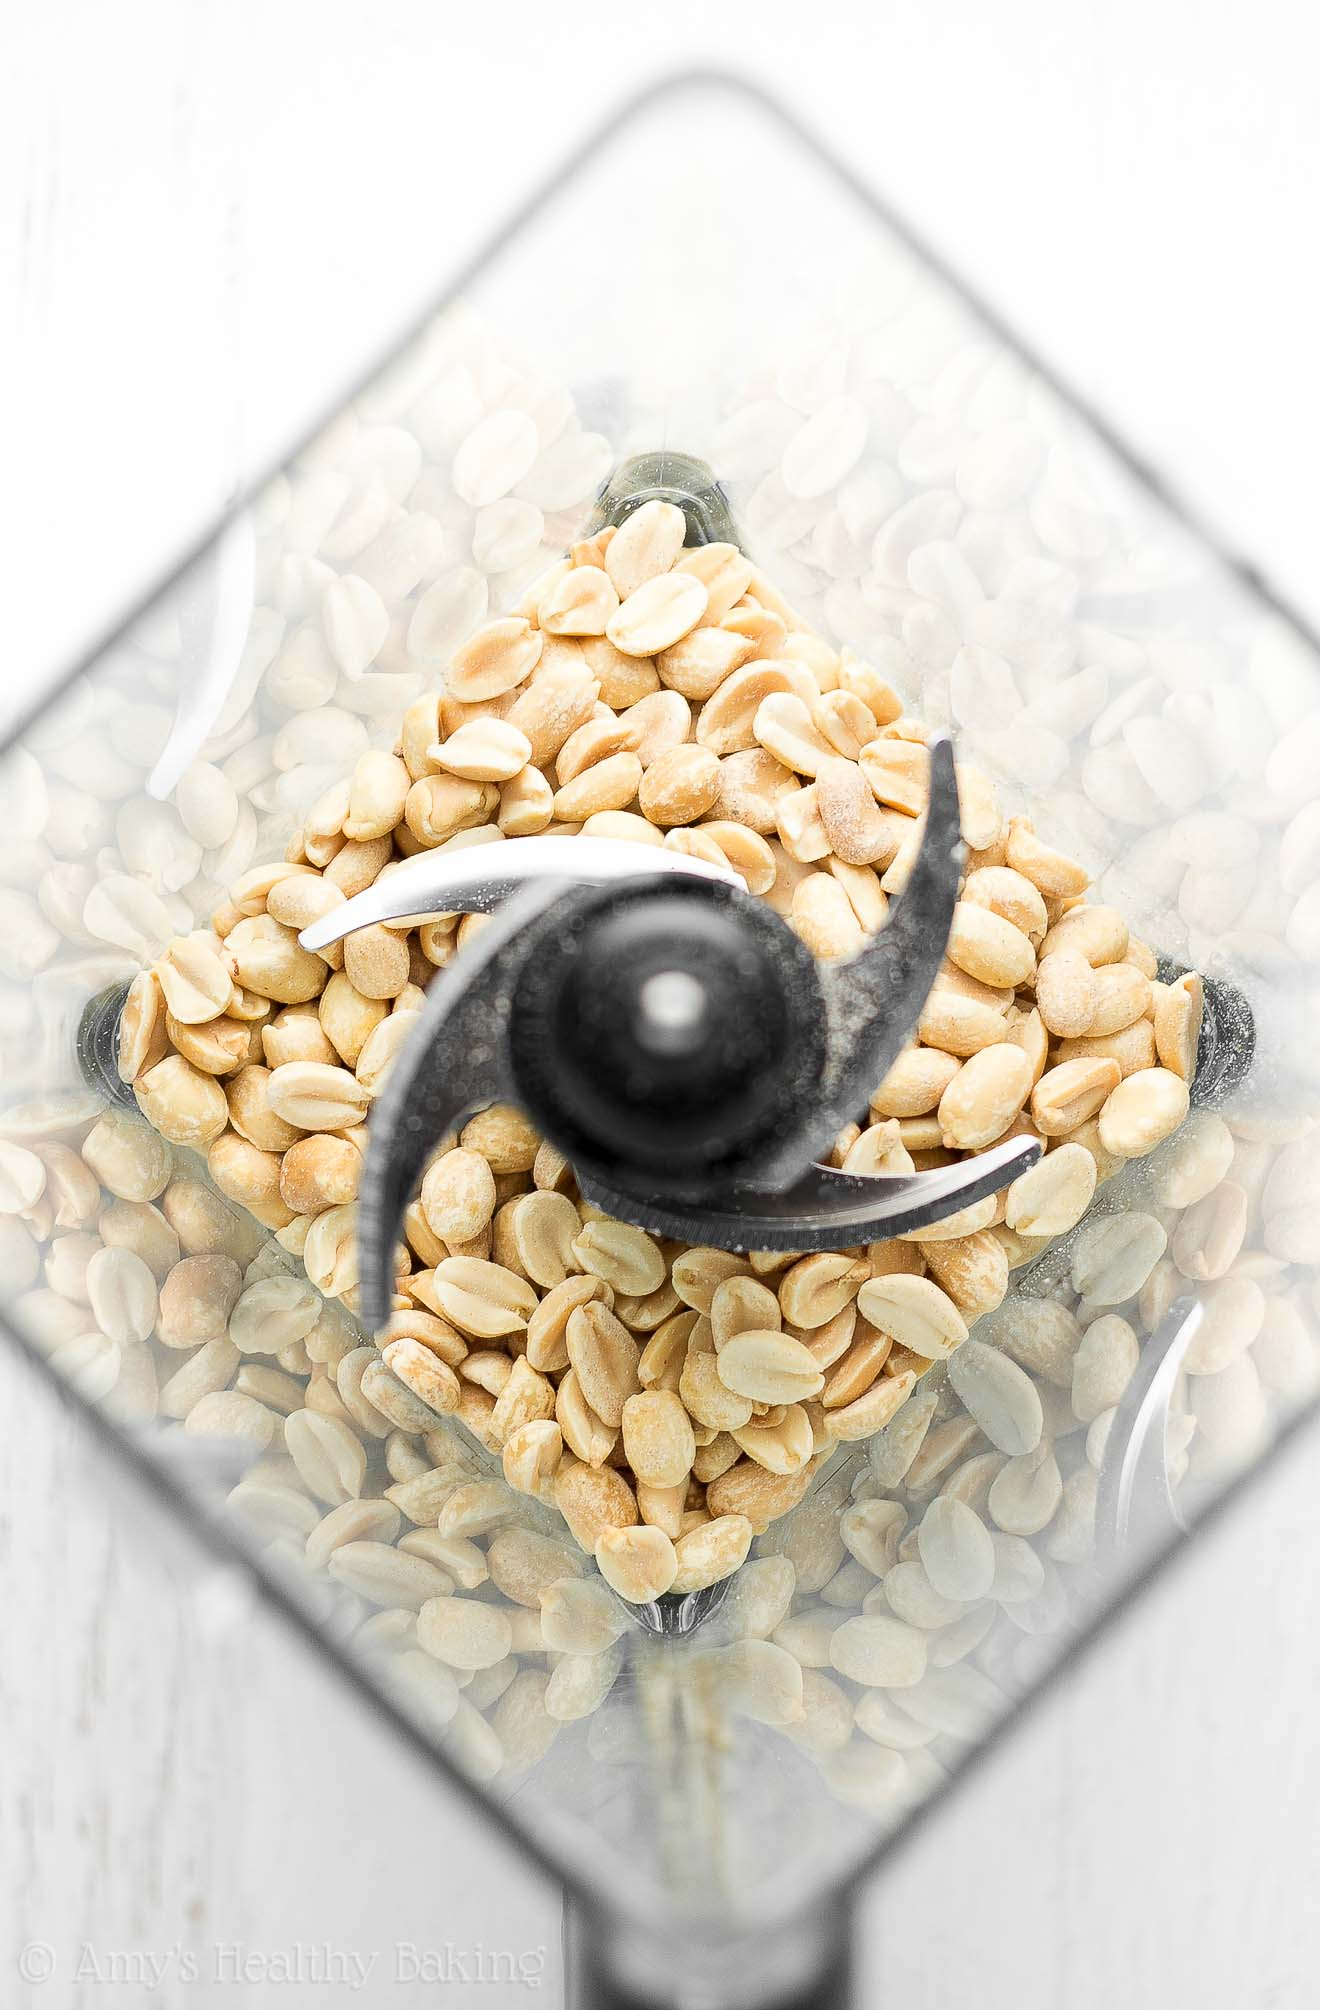 Blender with peanuts